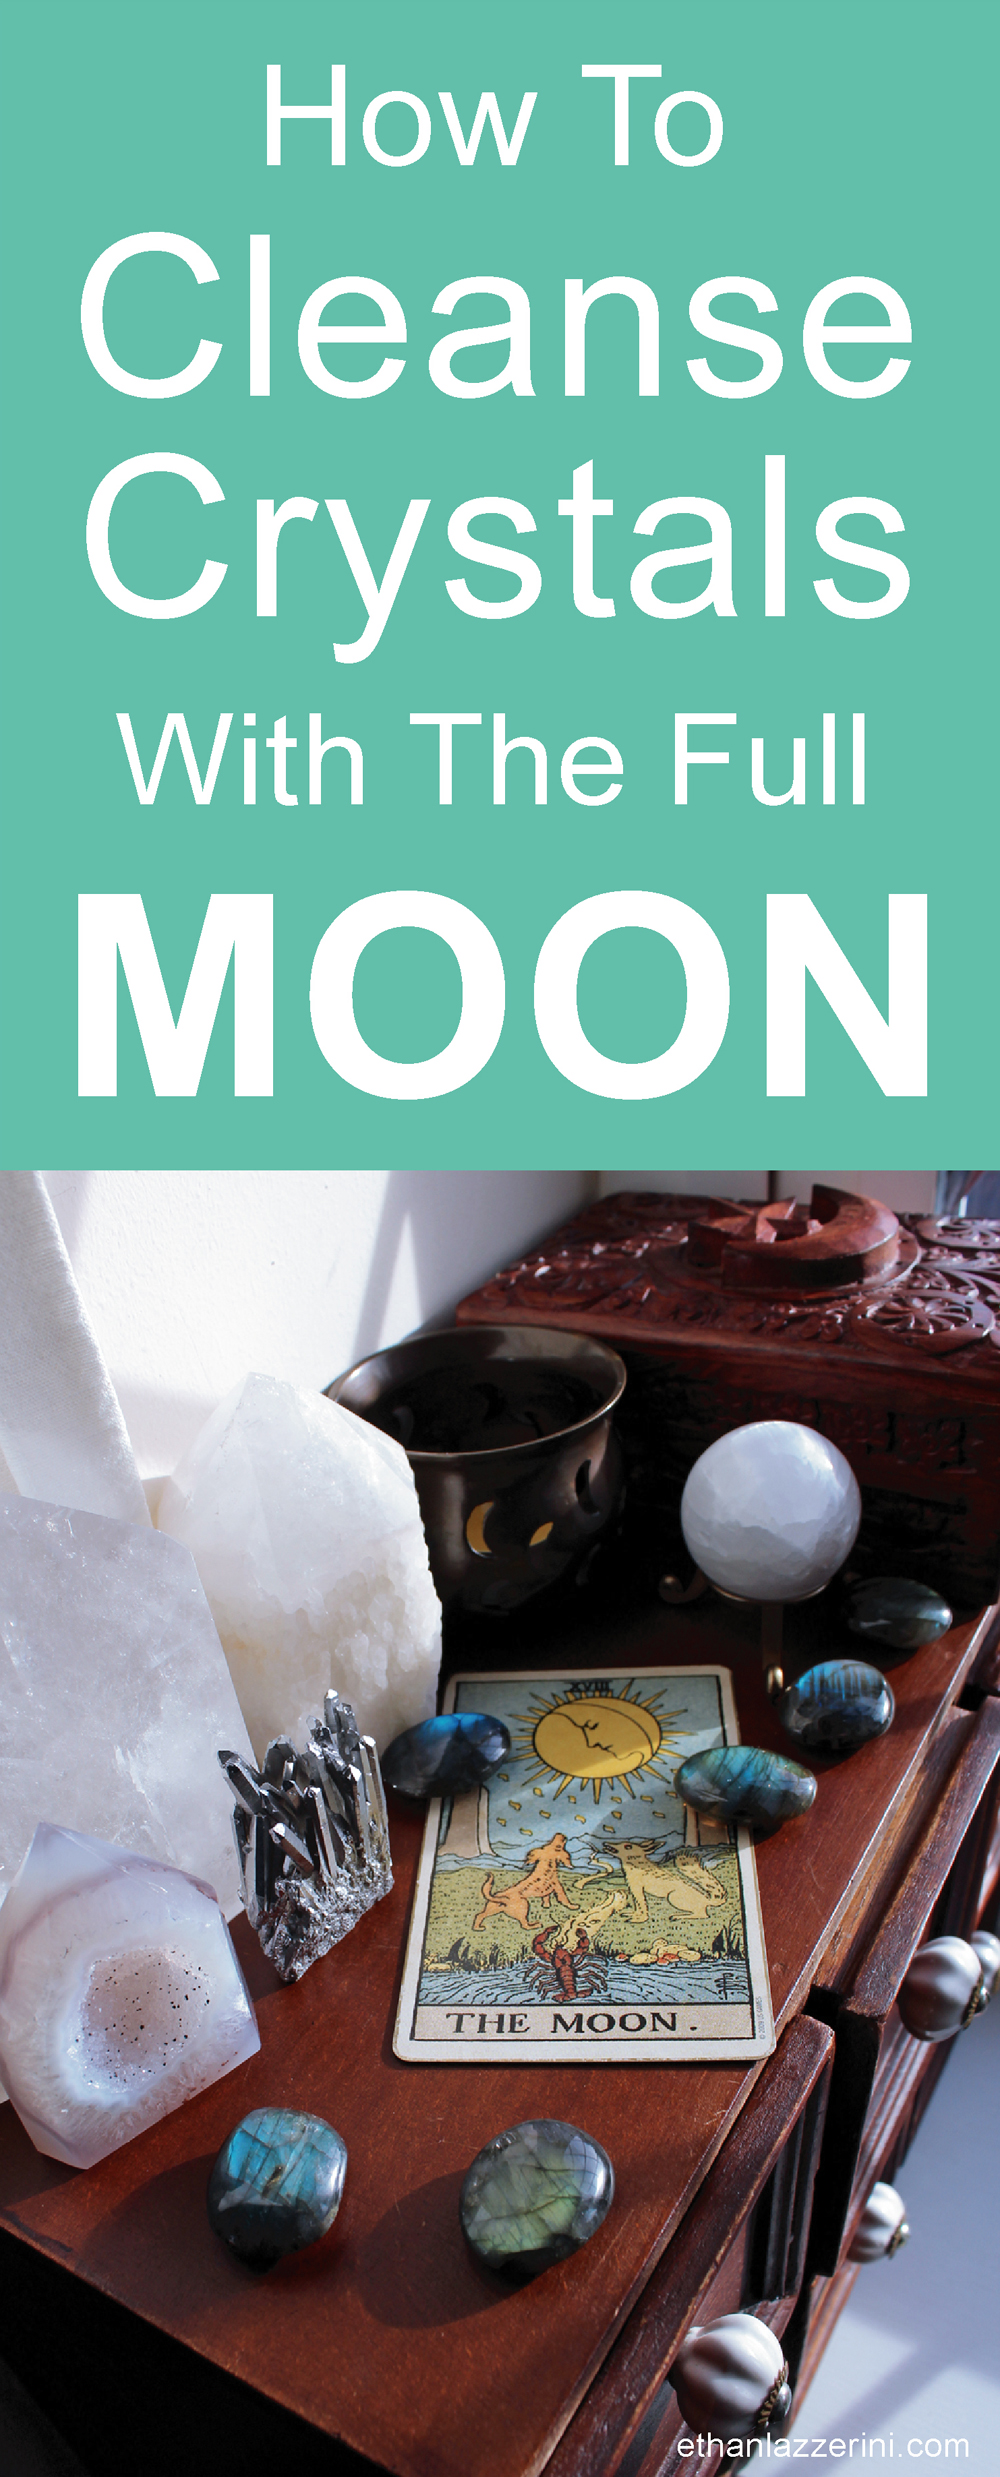 How To Cleanse Crystals By The Full Moon - Ethan Lazzerini